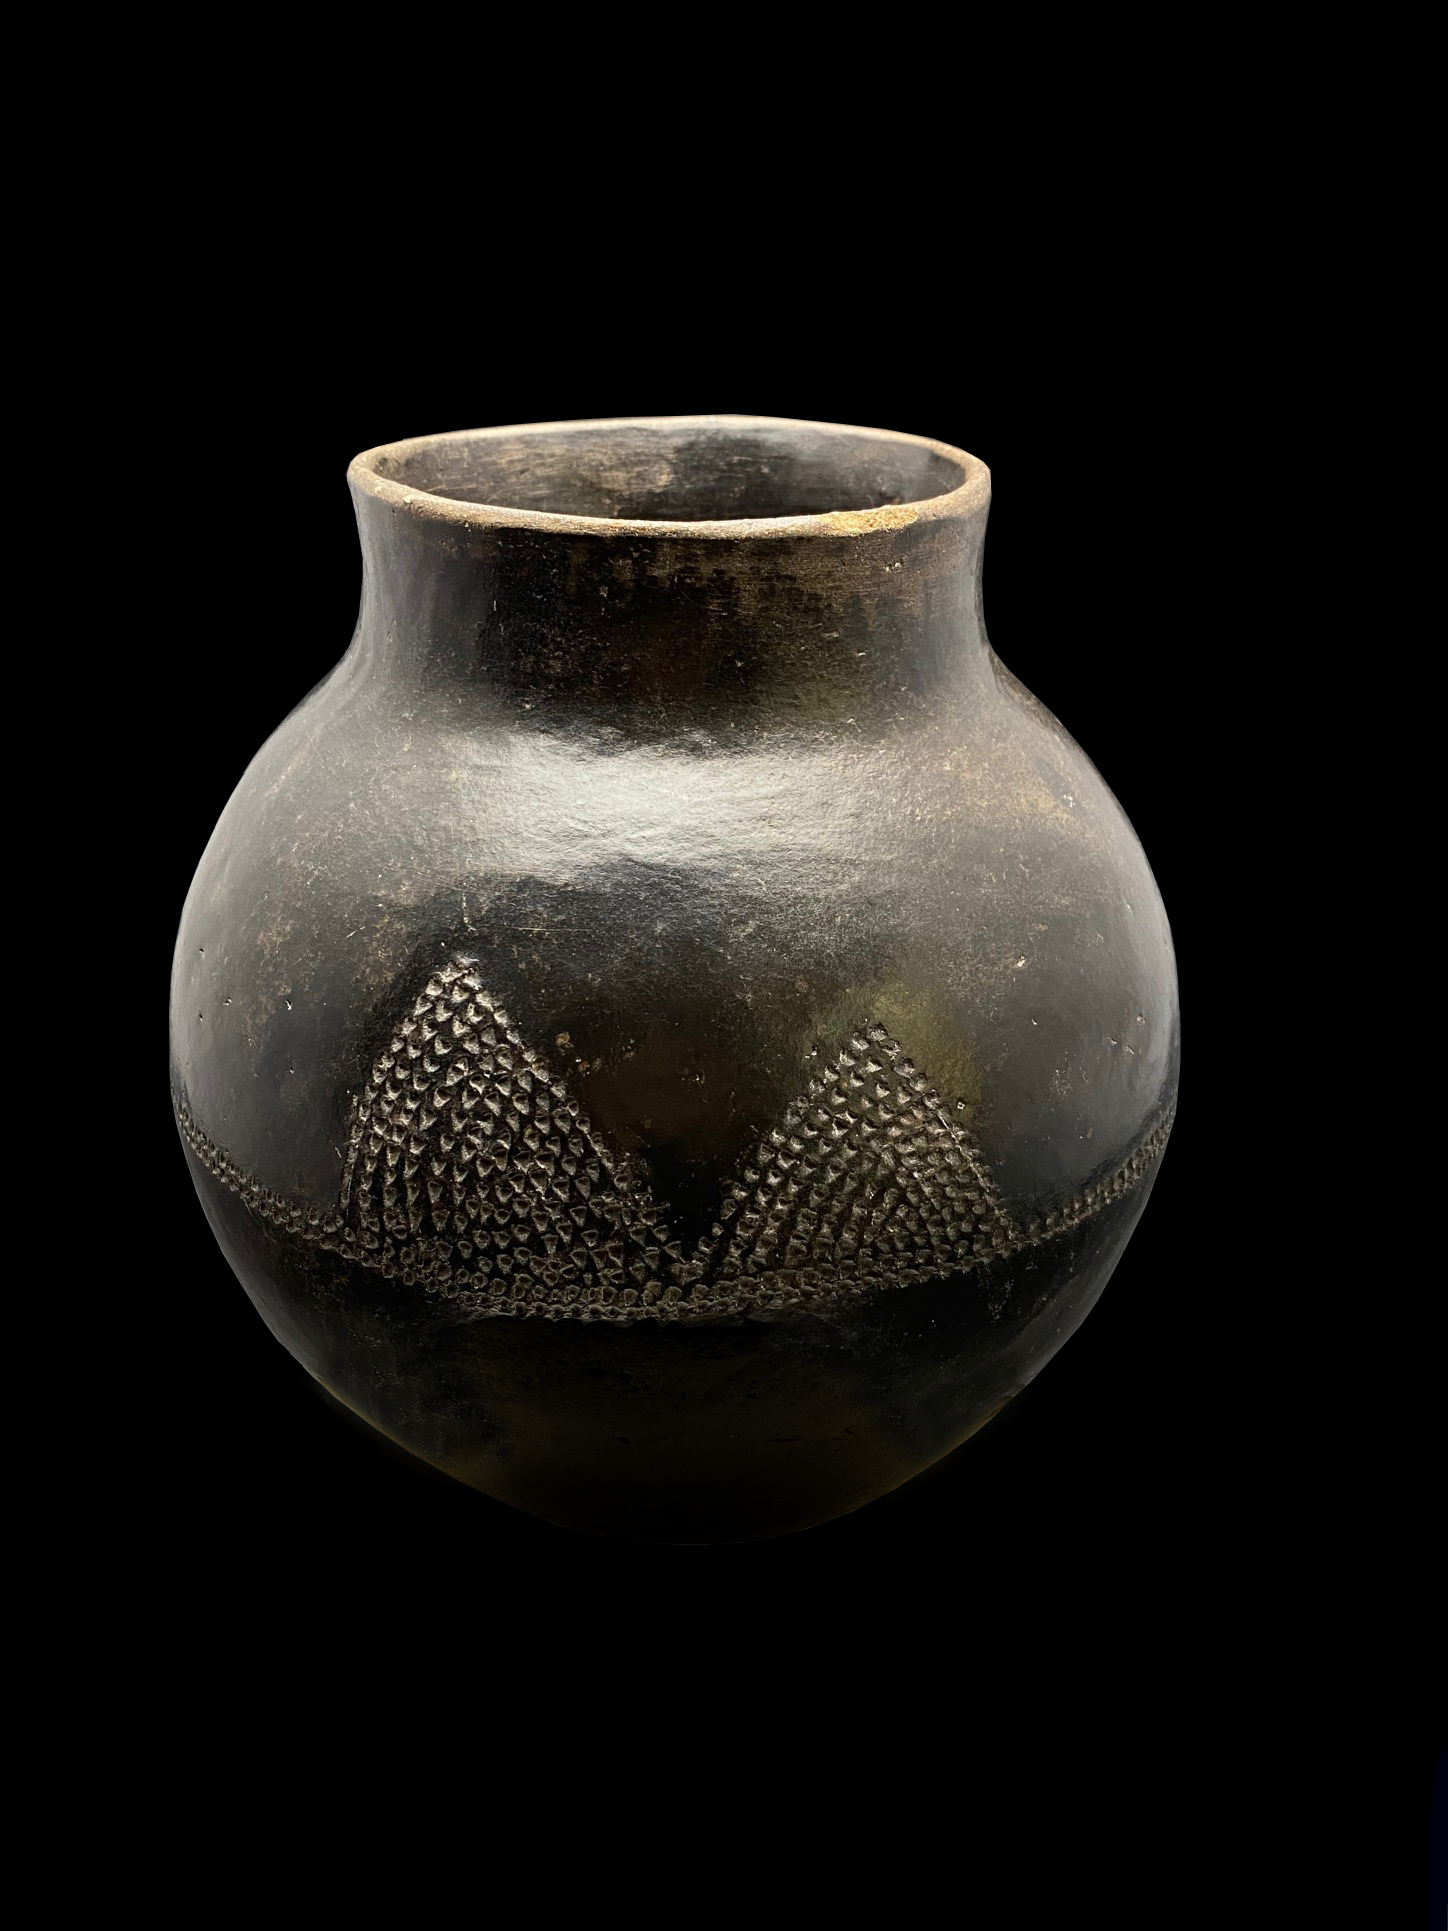 Clay Beer Pot - Zulu People, South Africa